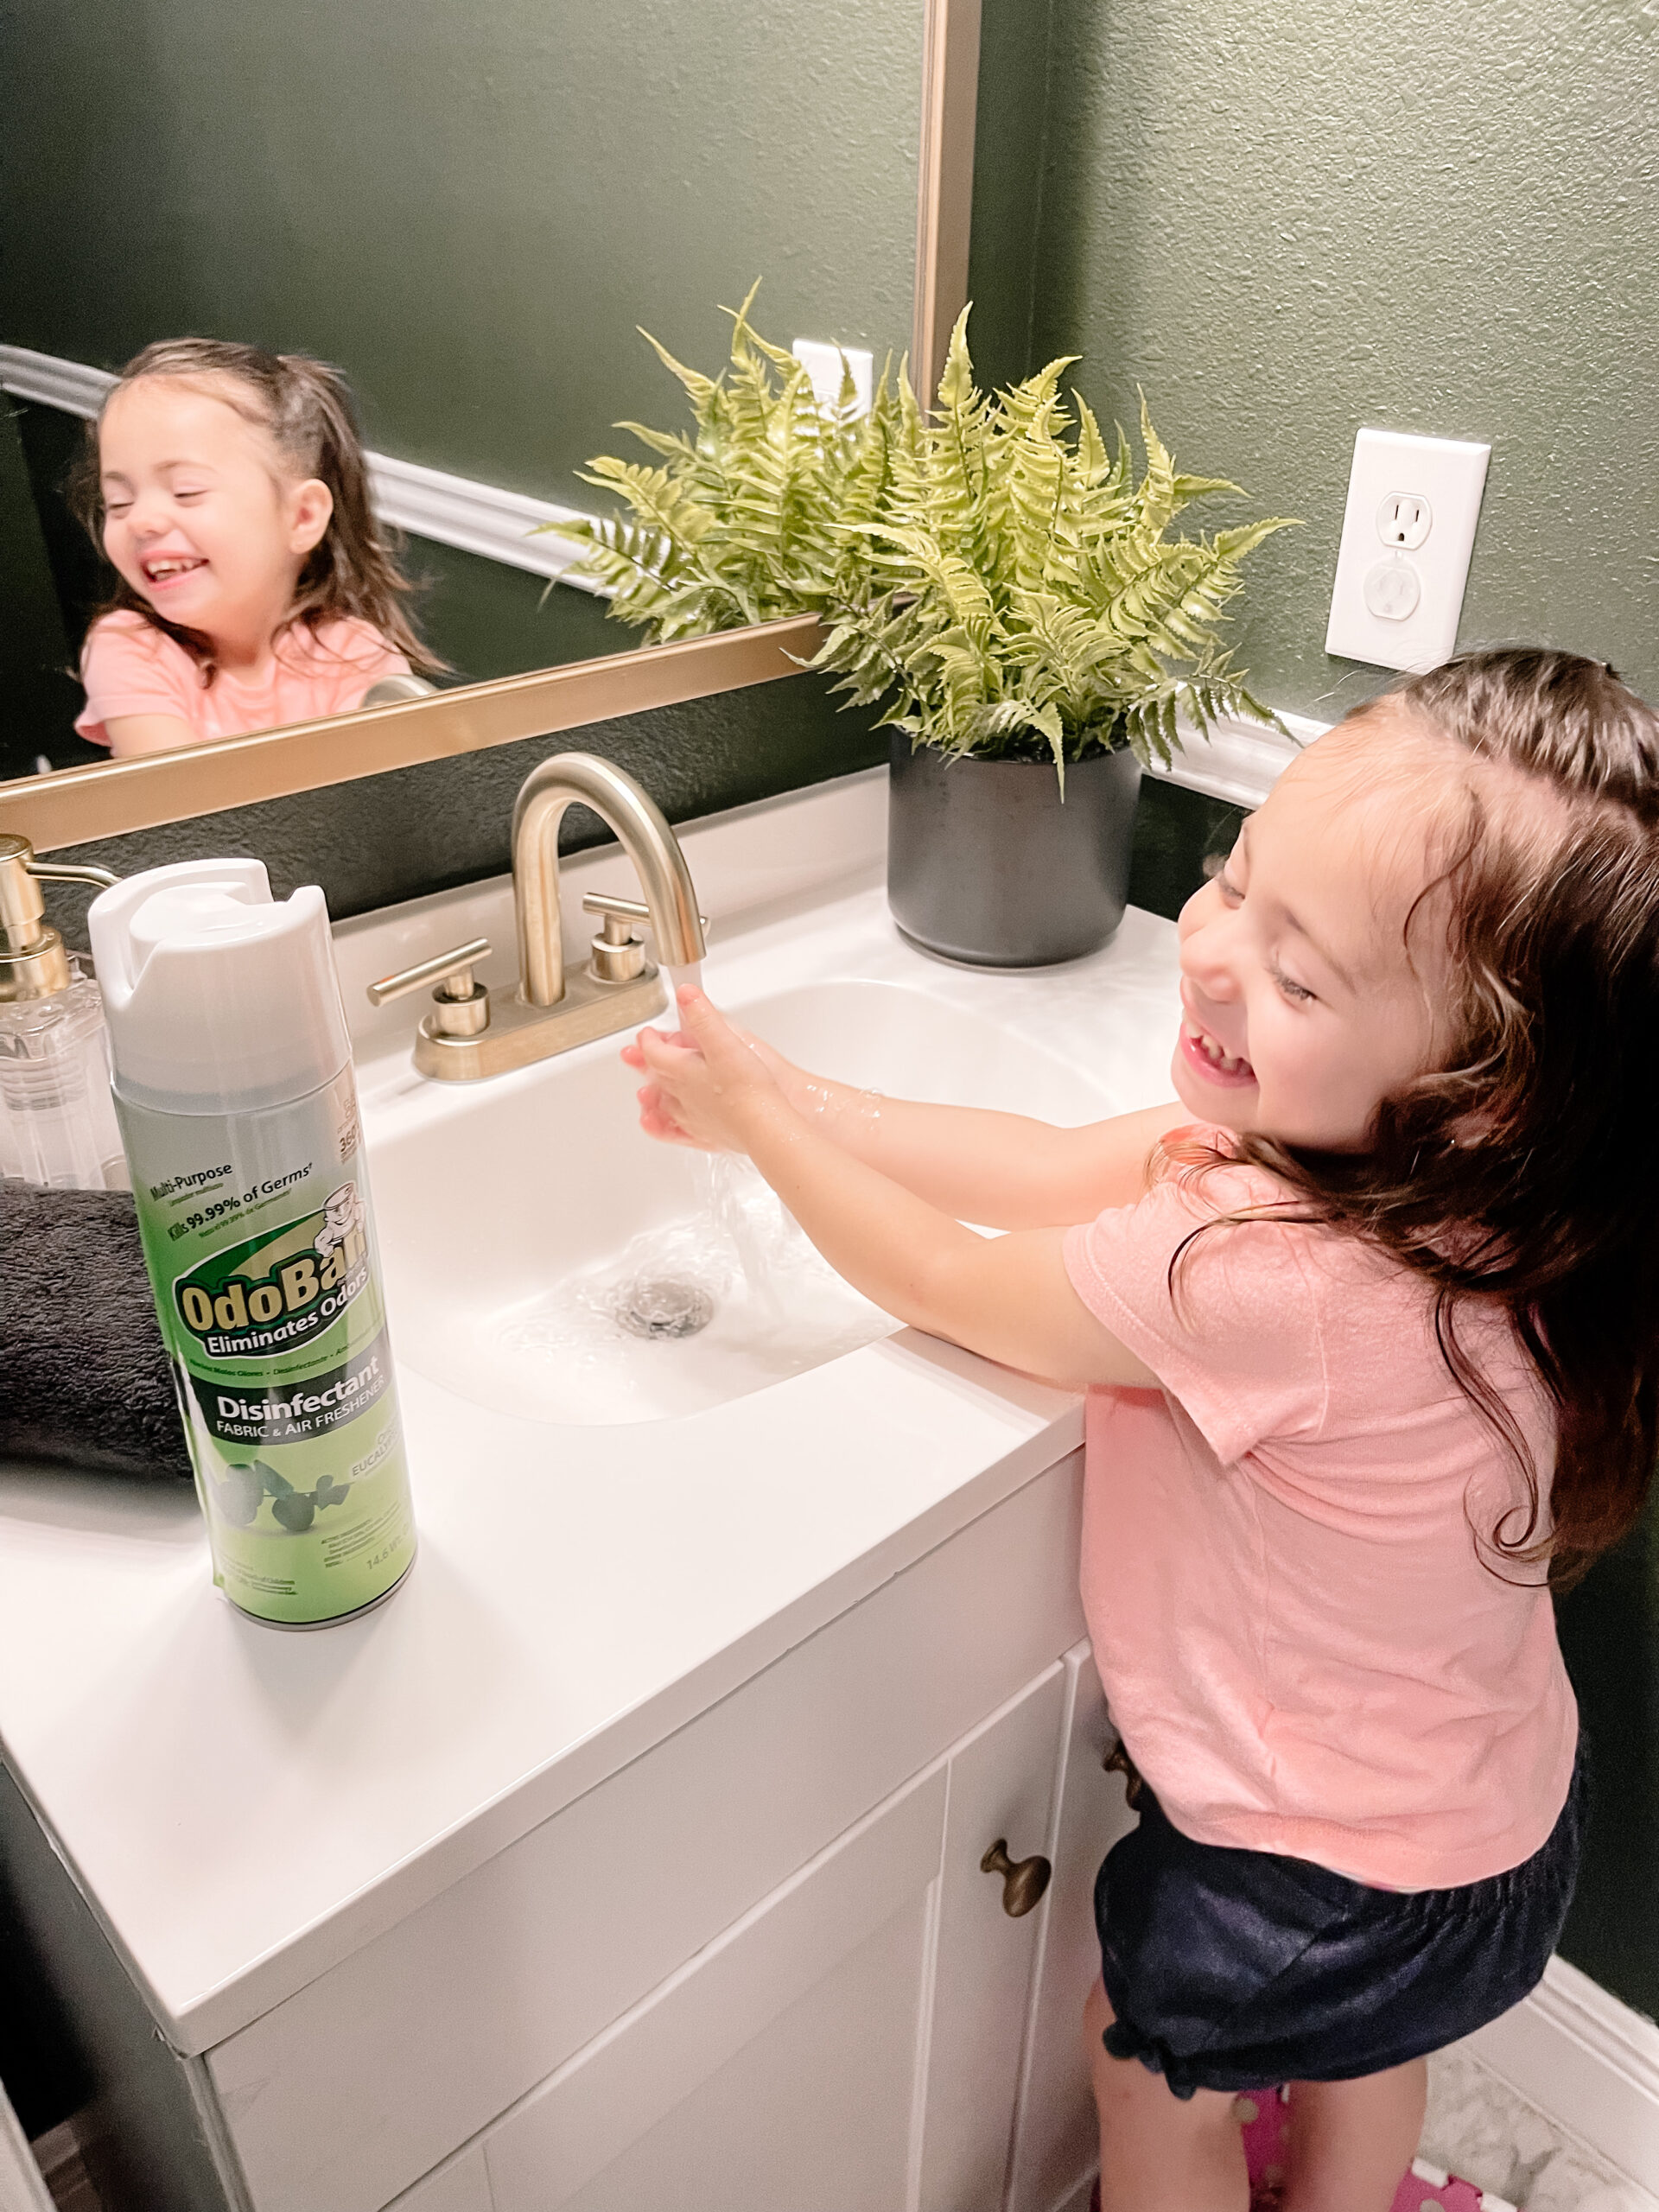 girl washing hands, odoban products